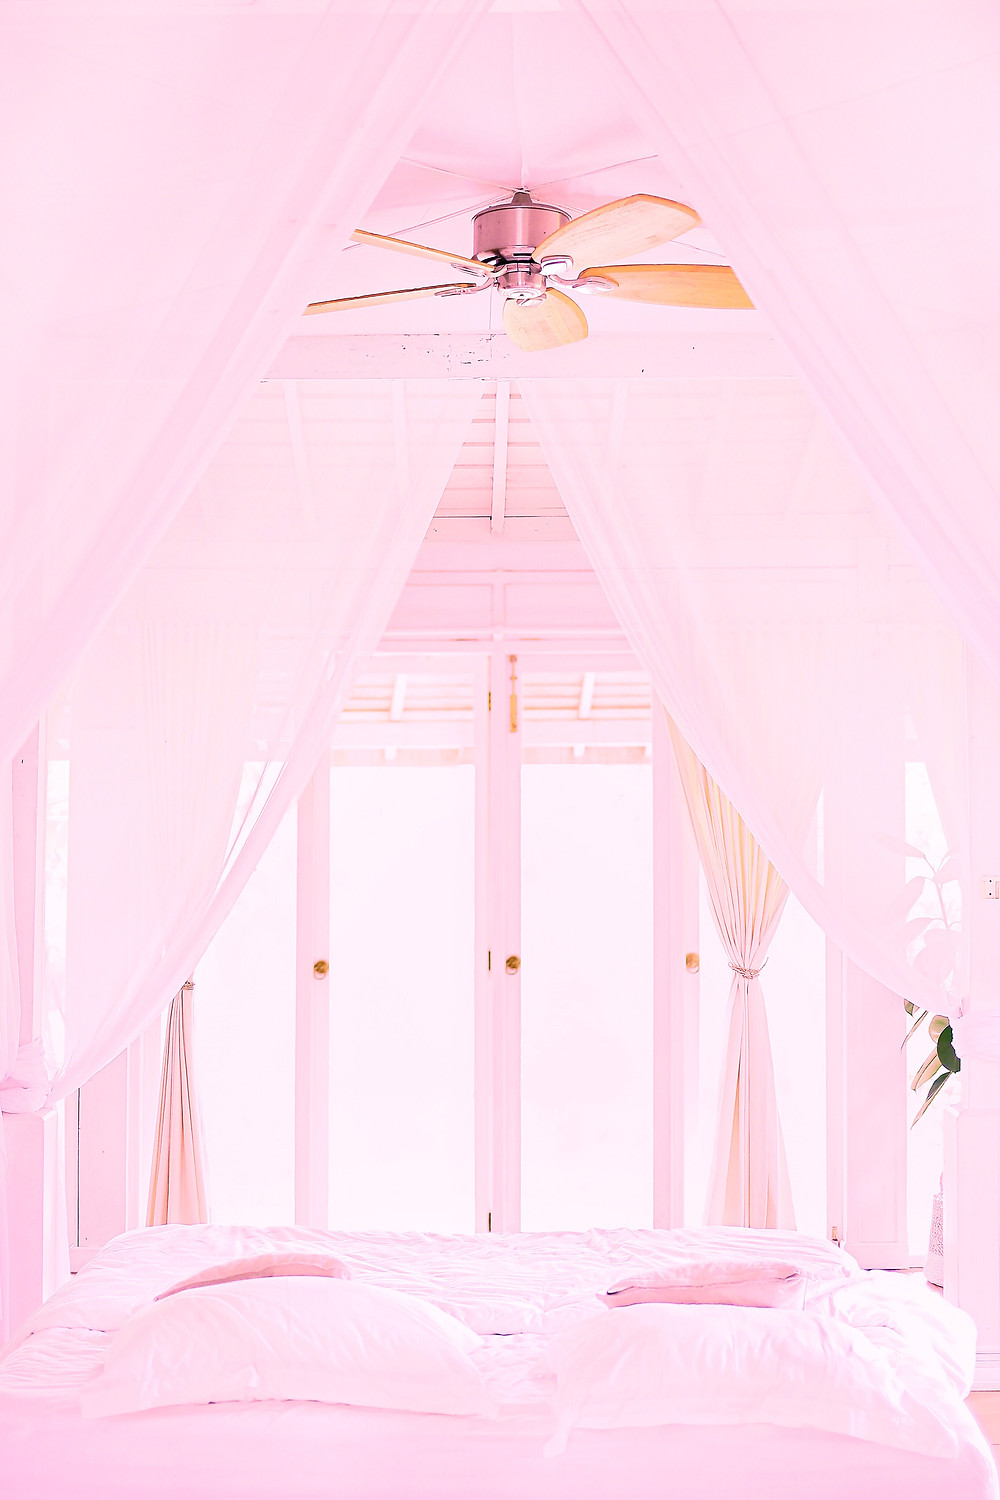 A new perspective on that same white room